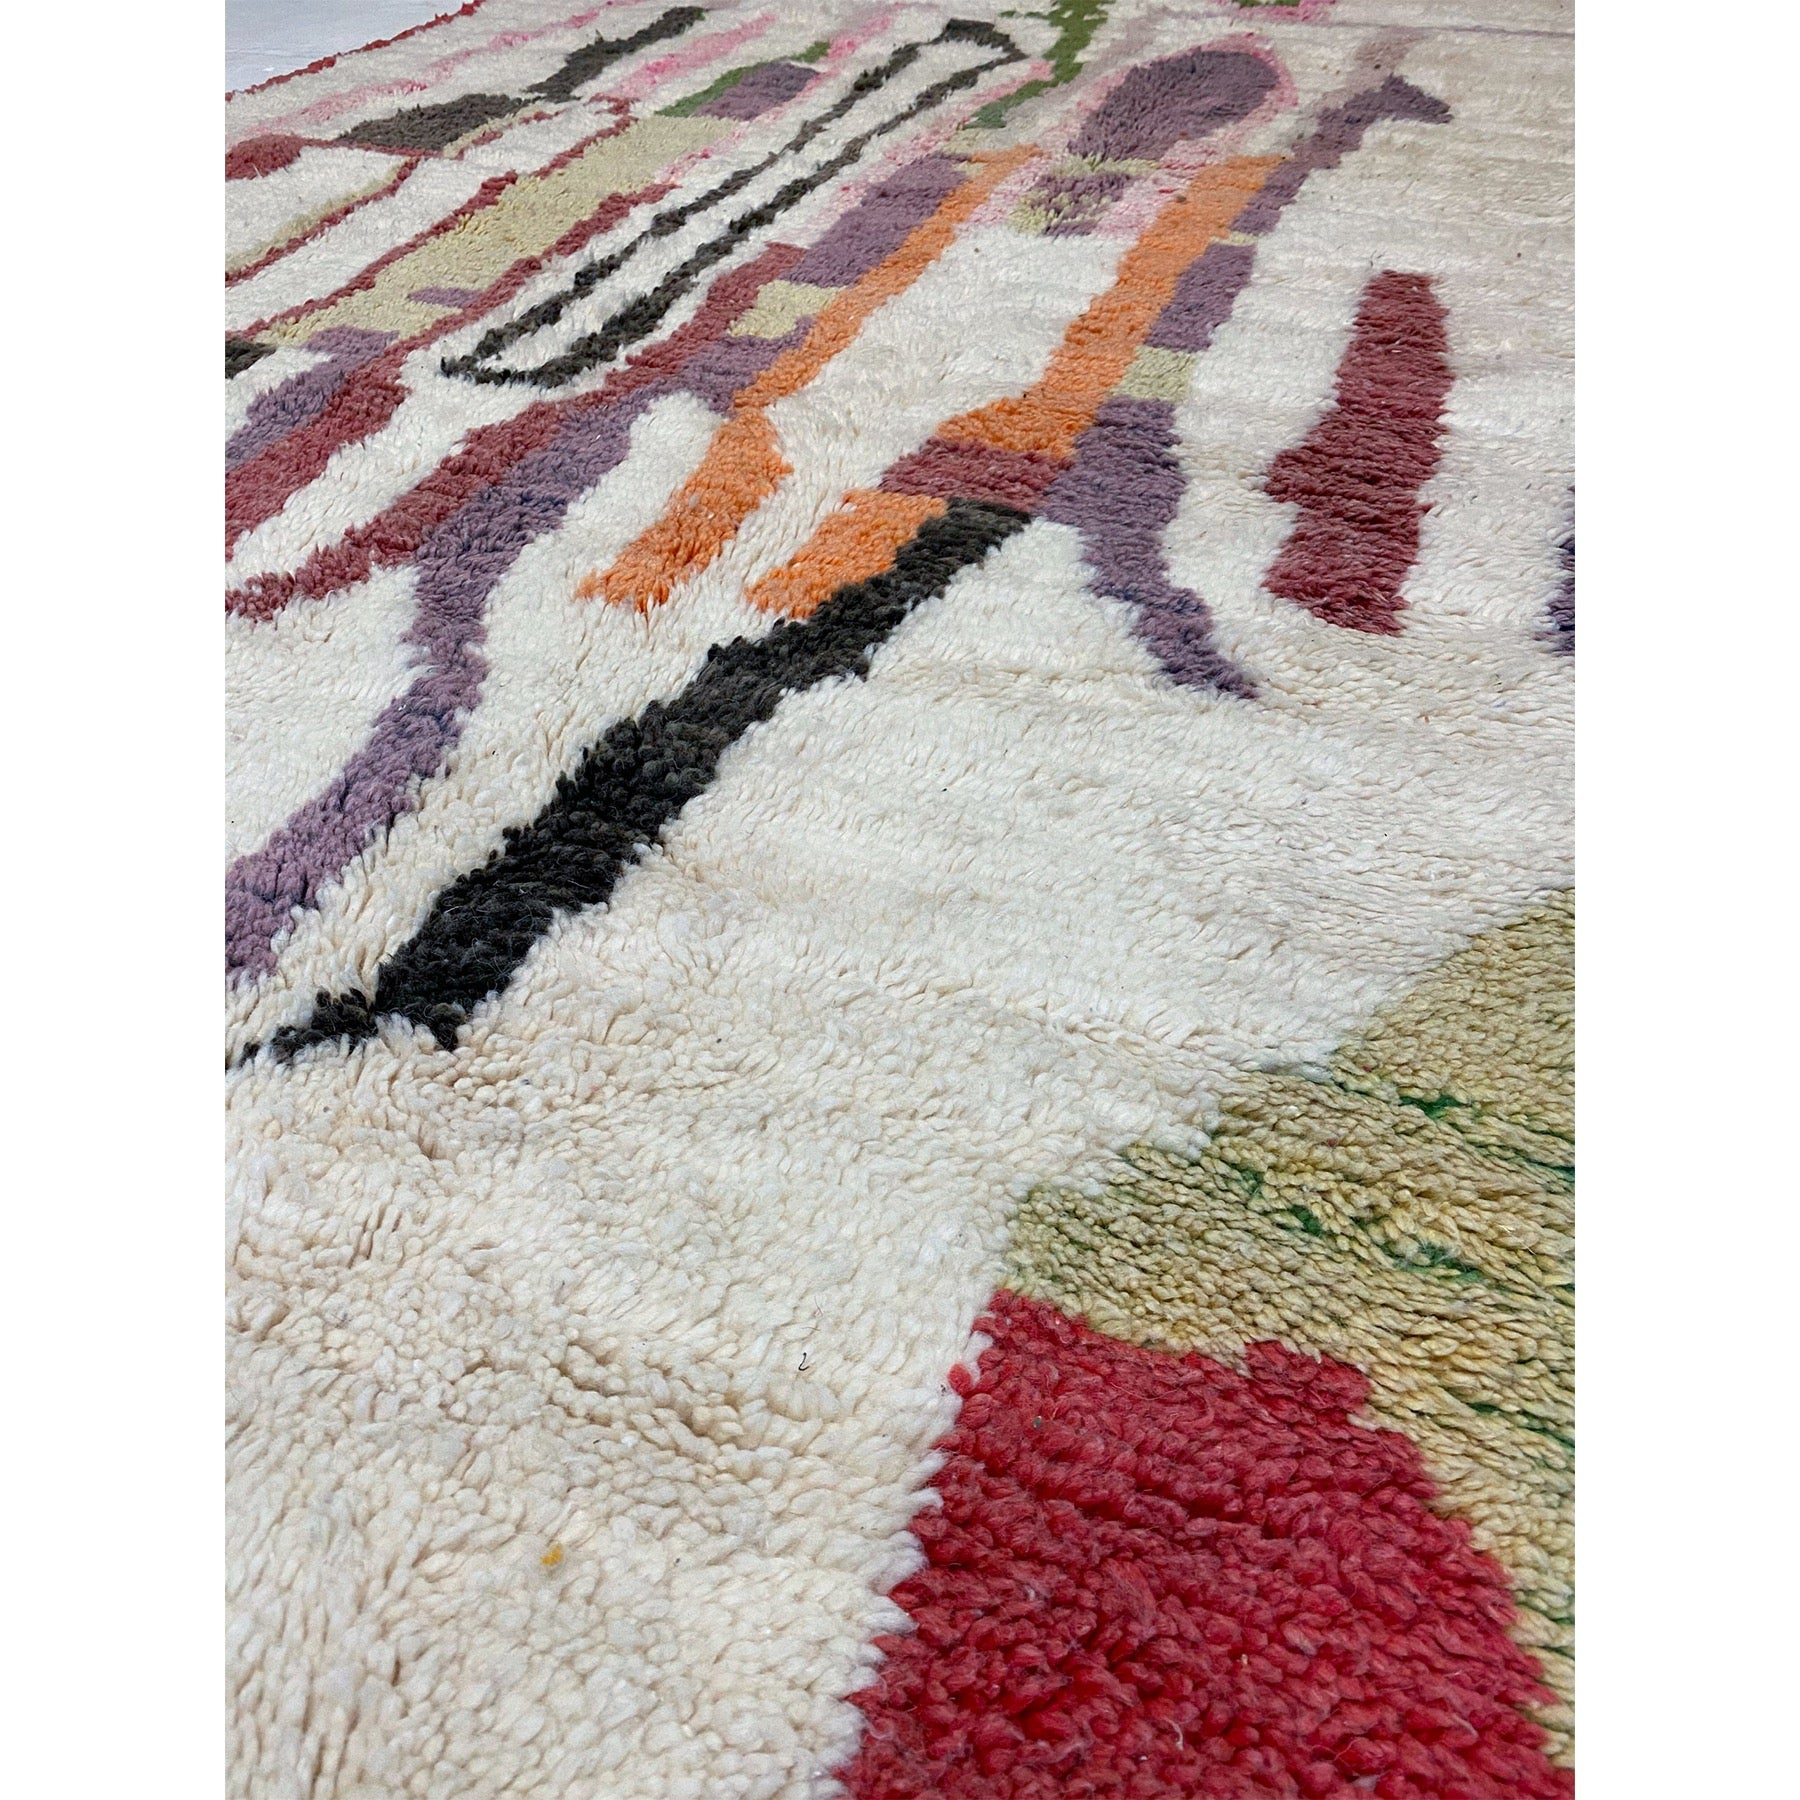 White berber carpet with colorful details - Kantara | Moroccan Rugs